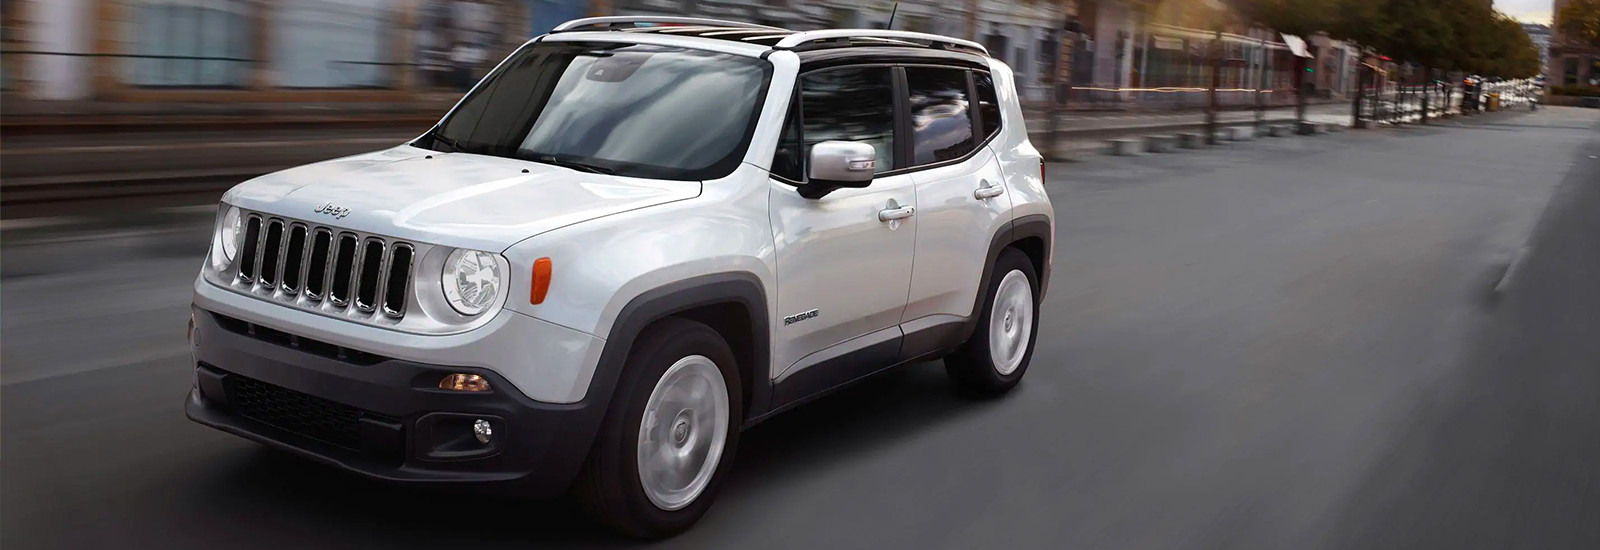 2019 Jeep Renegade Millsboro Chrysler Dodge Jeep Ram